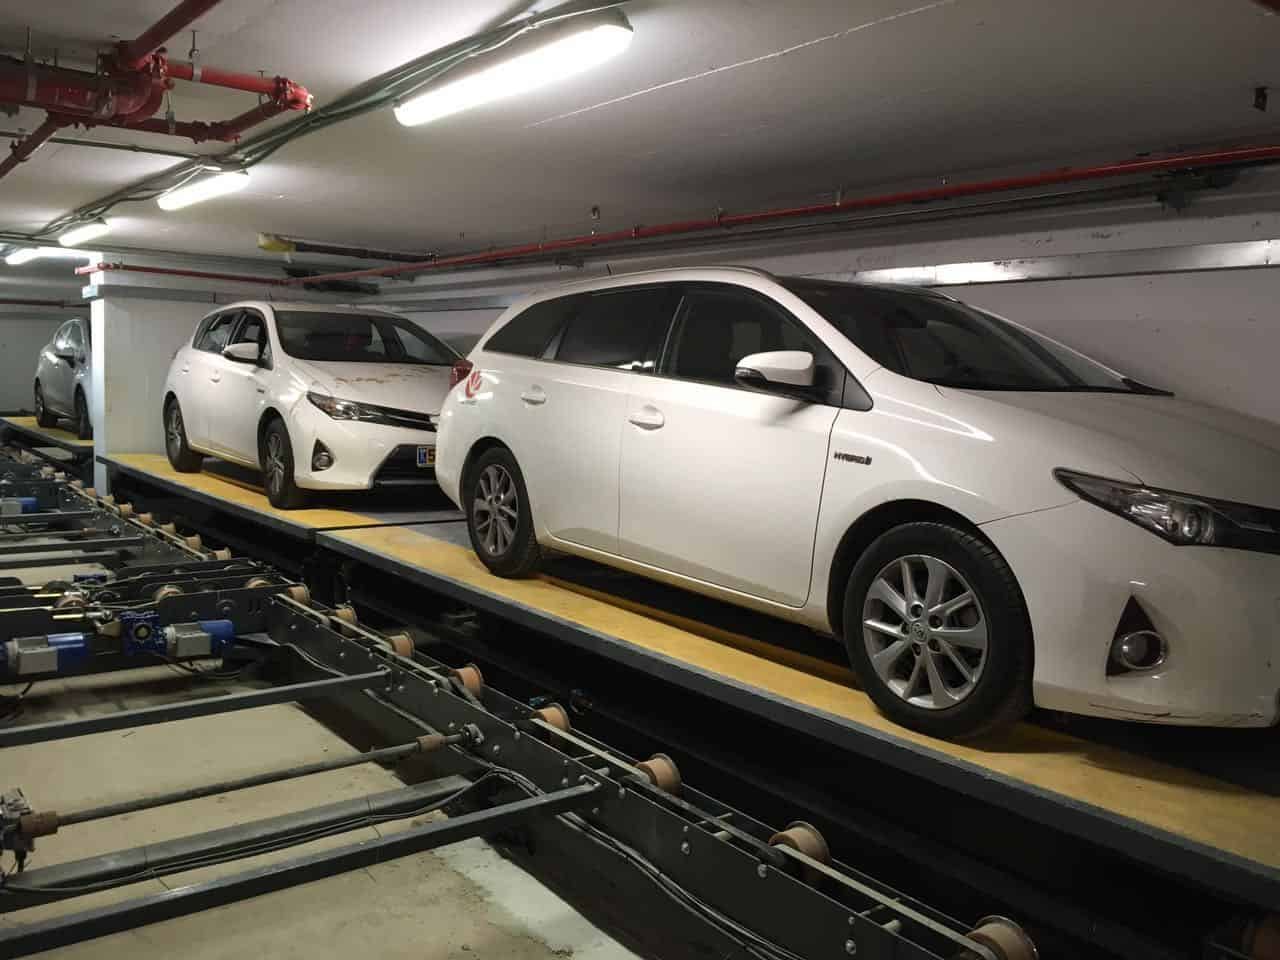 Conveyor Automated Parking System